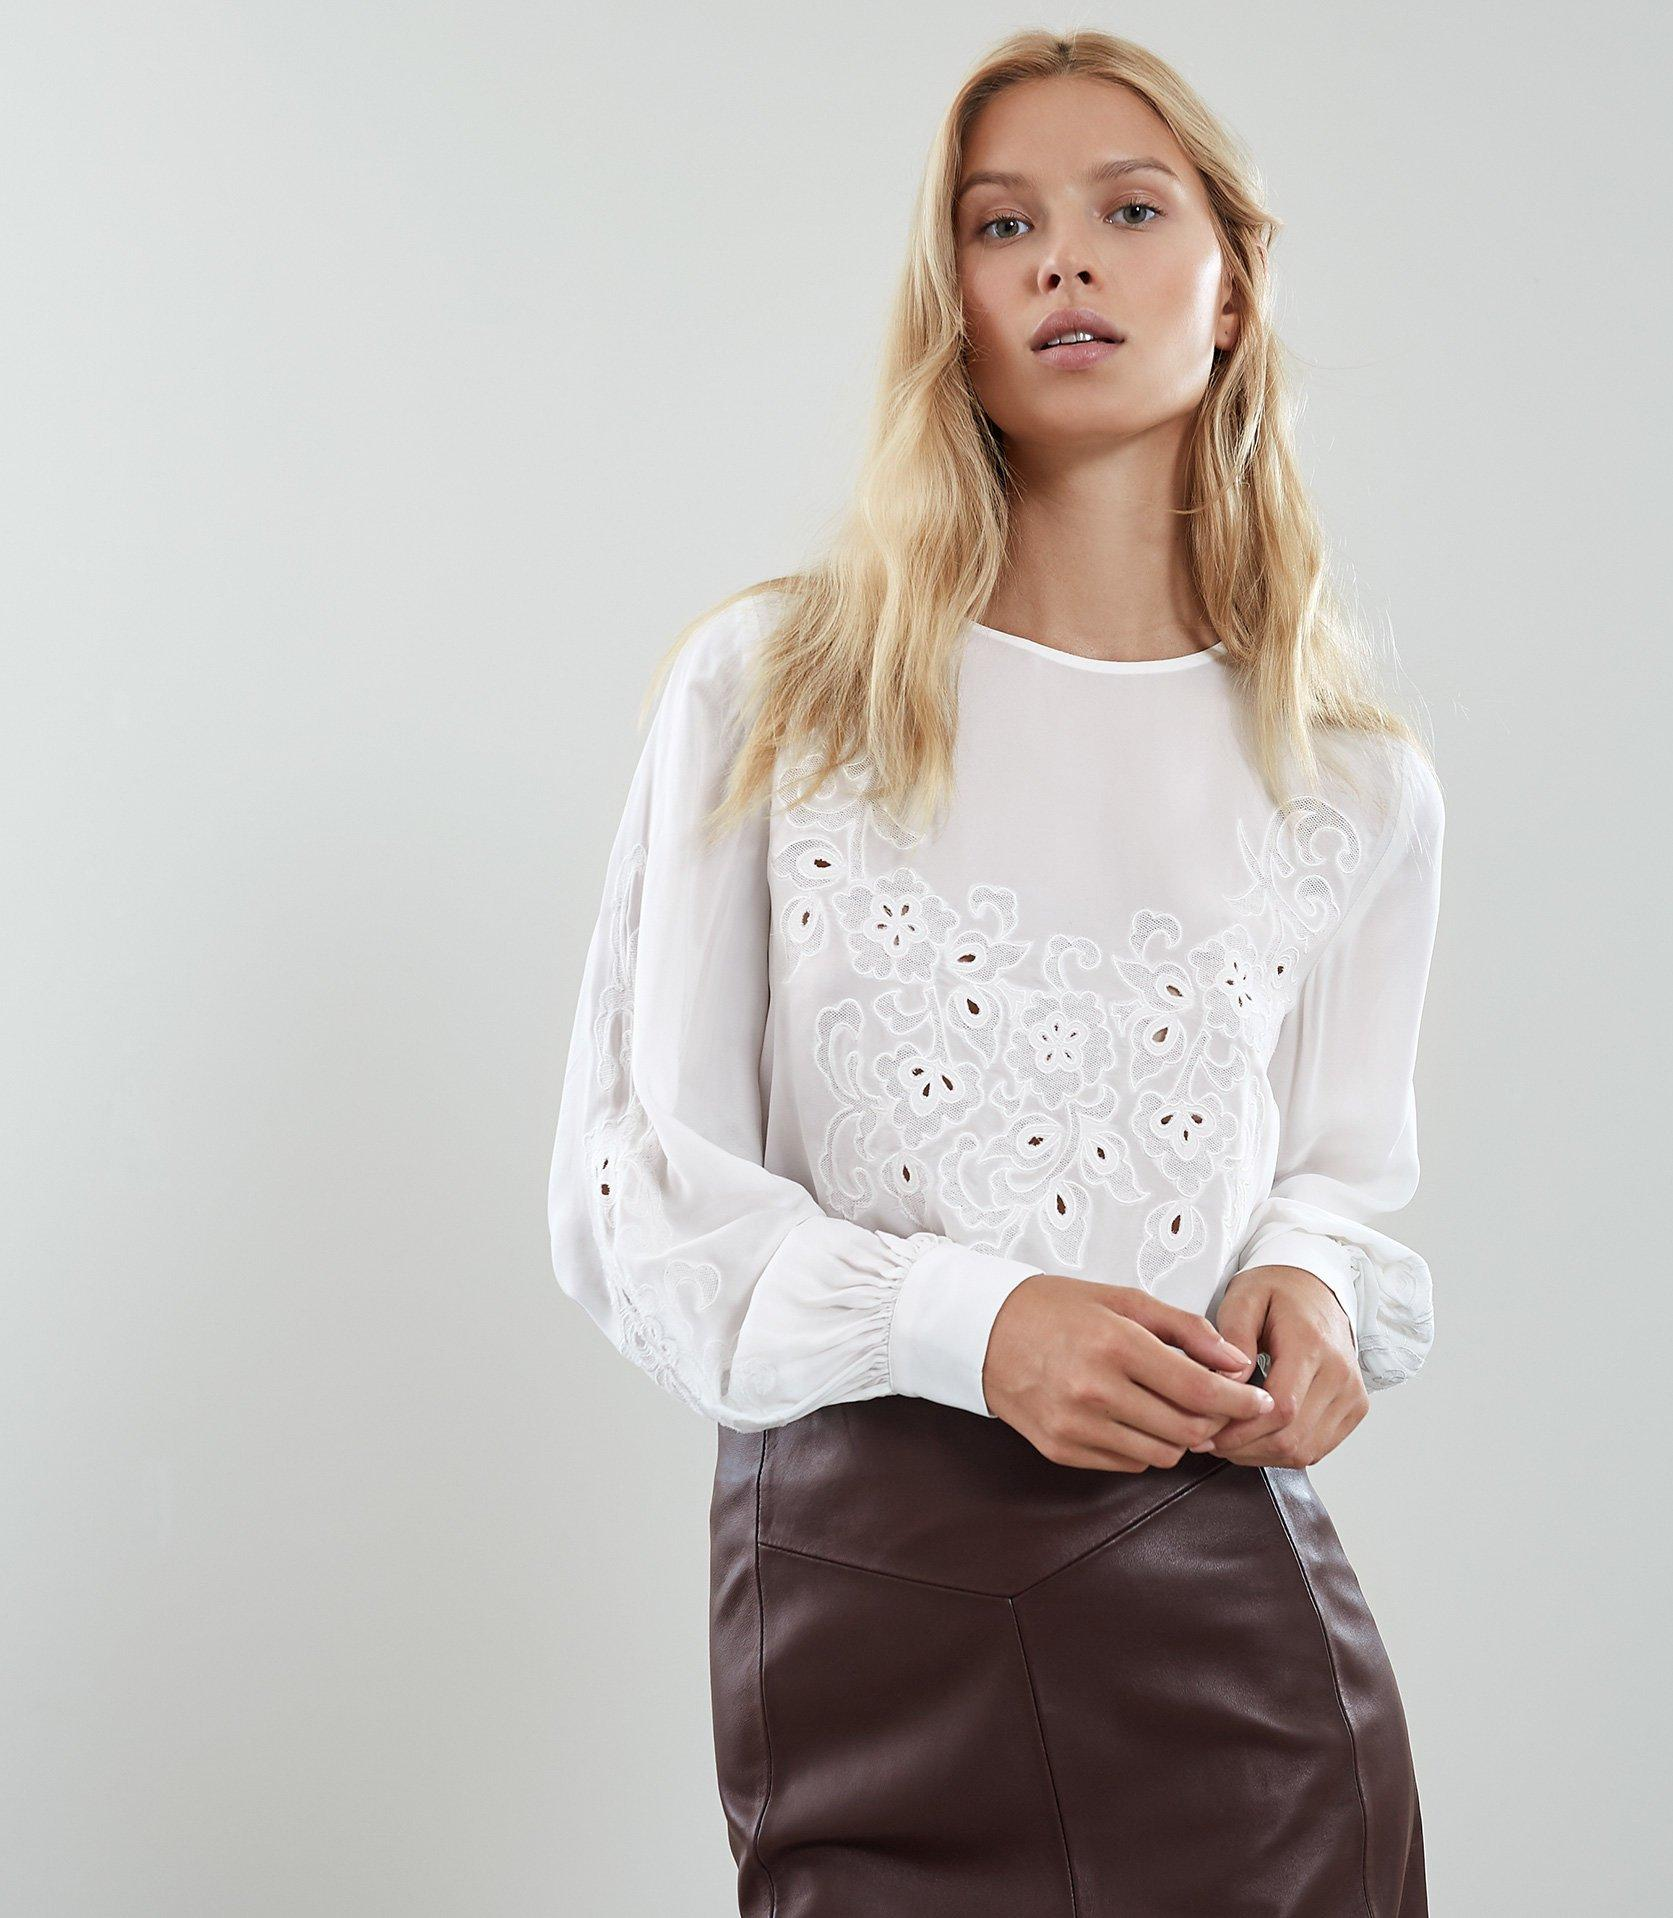 b20749c1ac4652 Lyst - Reiss Pansy - Floral Embroidered Blouse in White